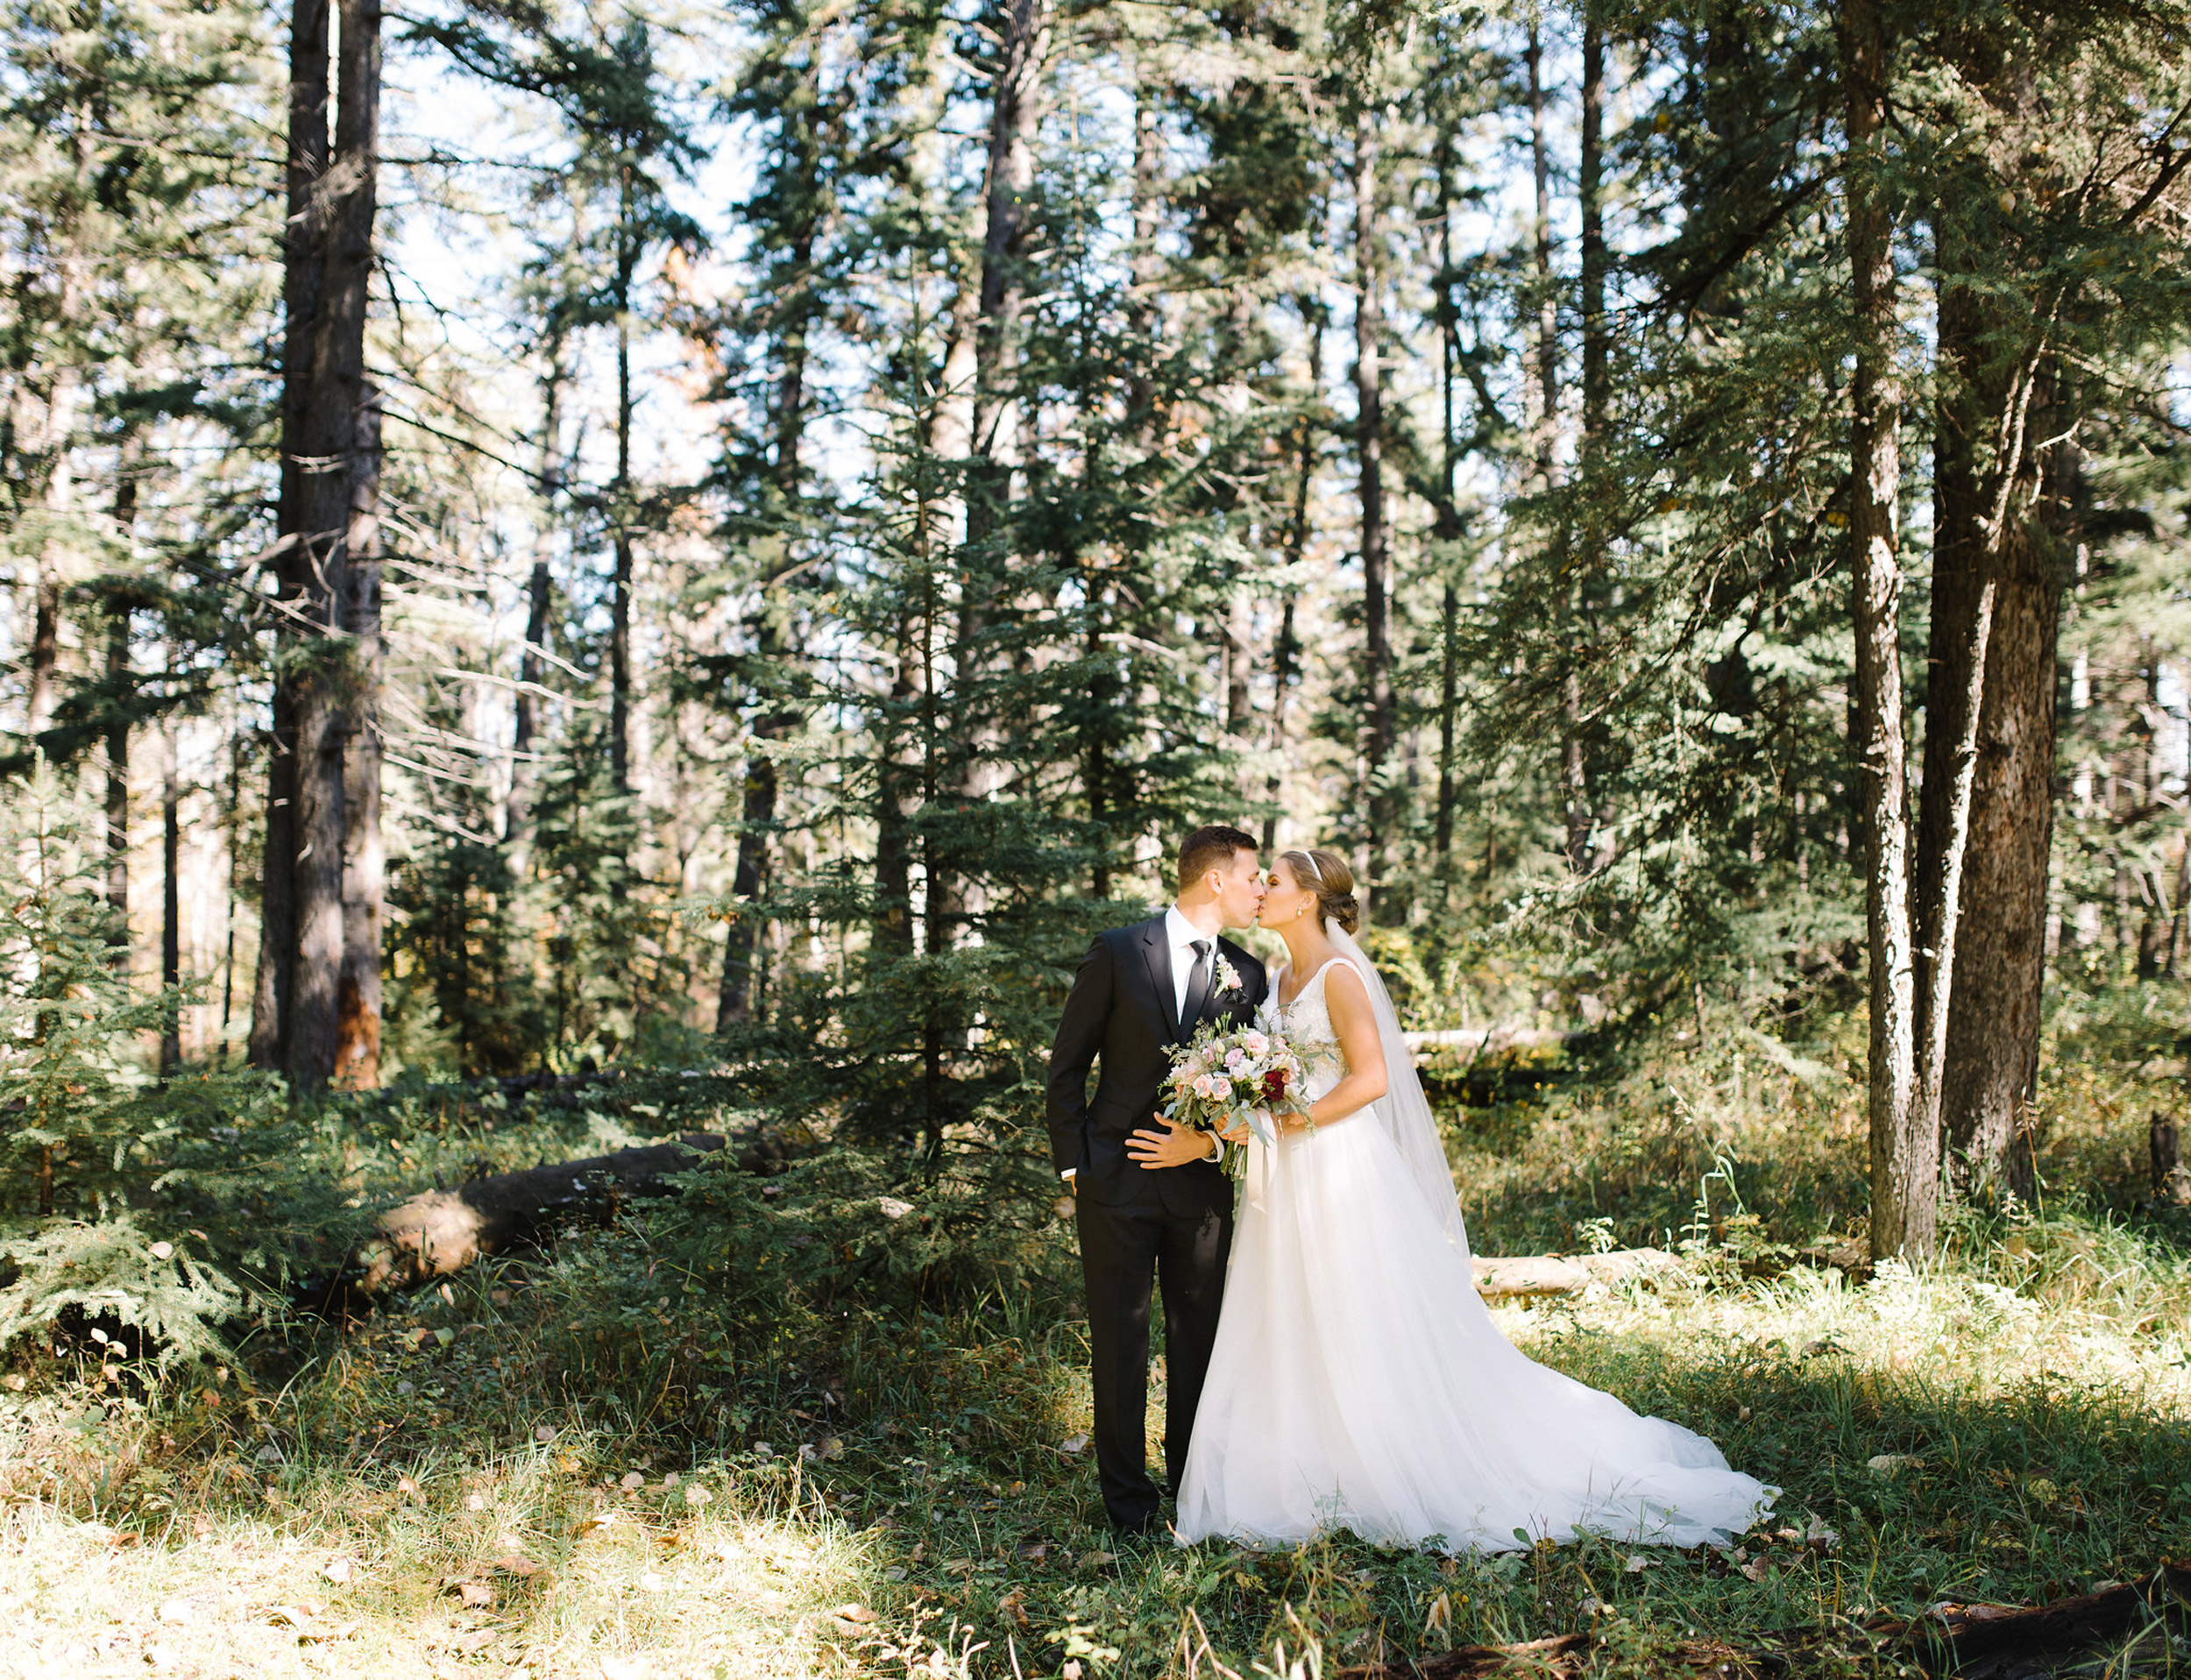 024-calgary_wedding_photographers.jpg